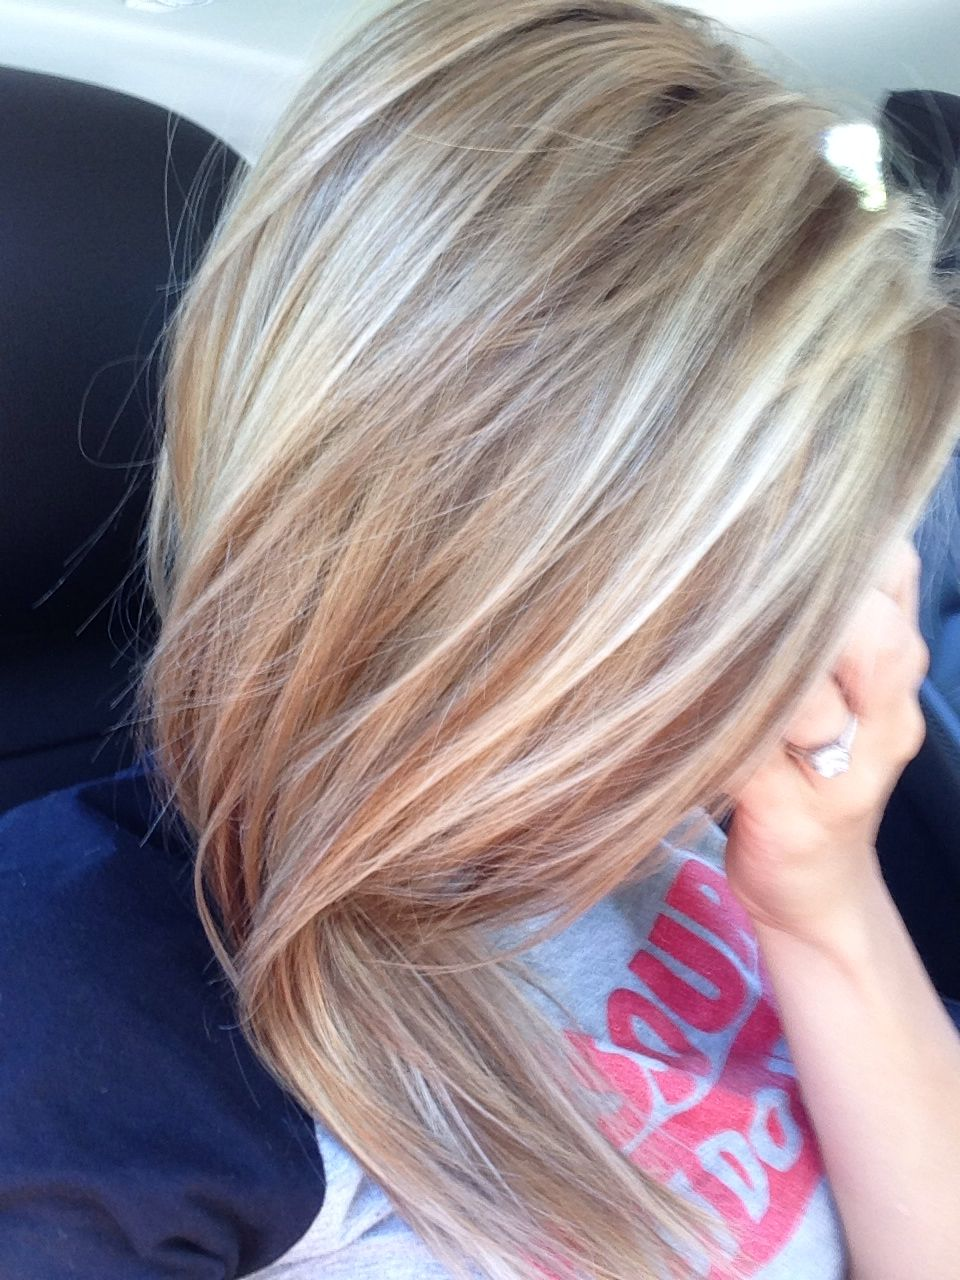 20 Blonde Hues To Try This Spring!